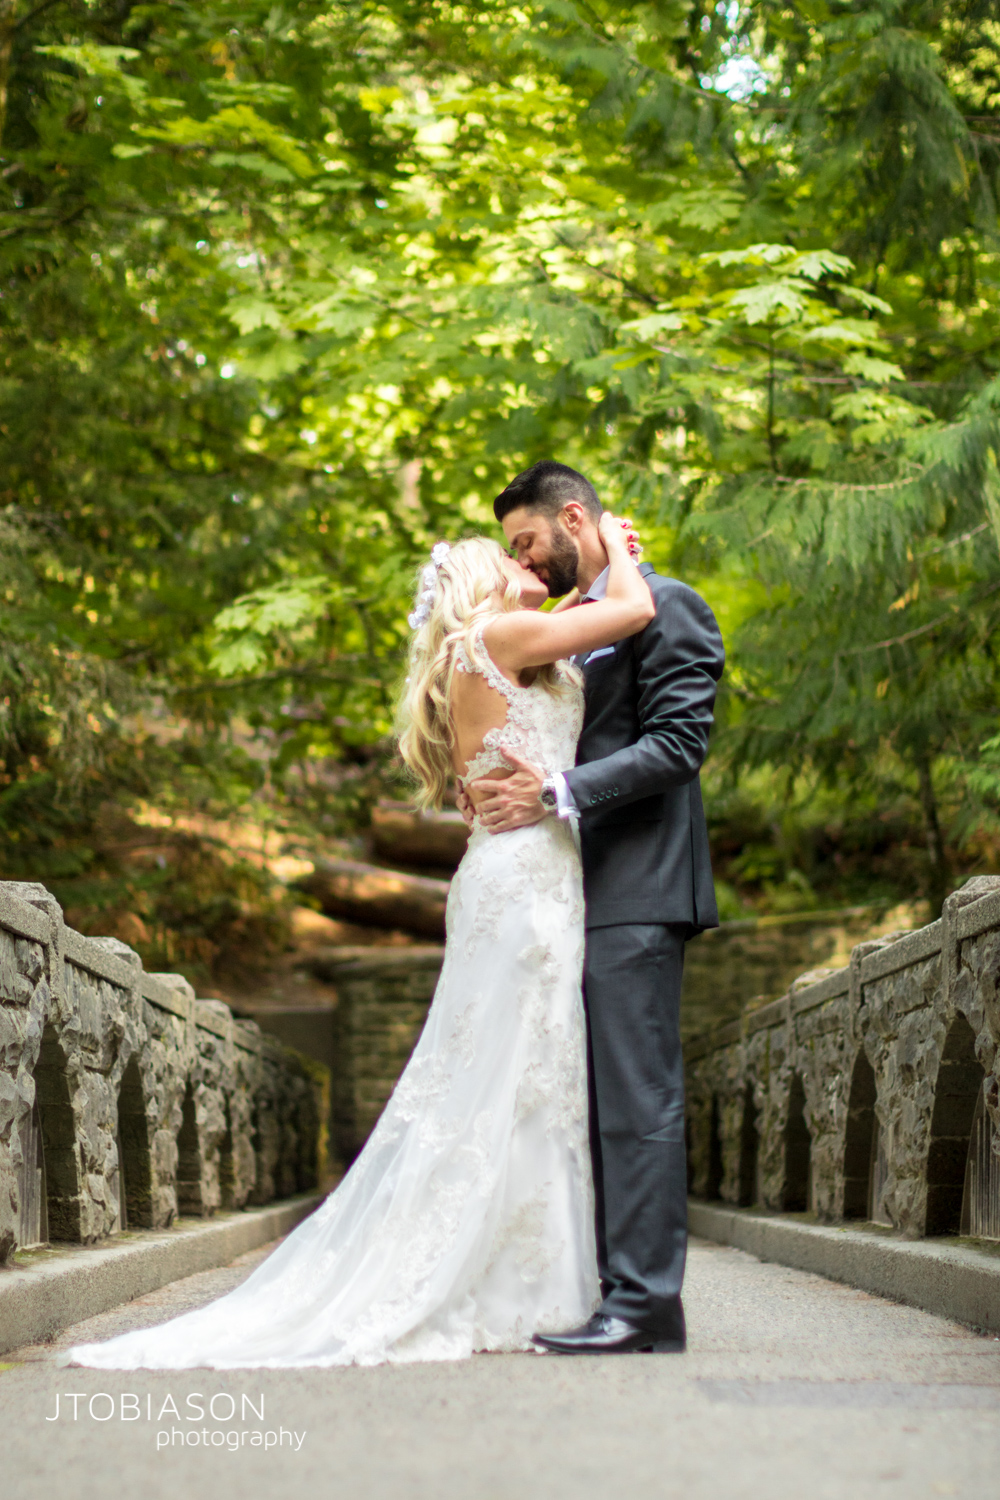 20 - Bride and groom kiss Bellingham Fall Wedding photo